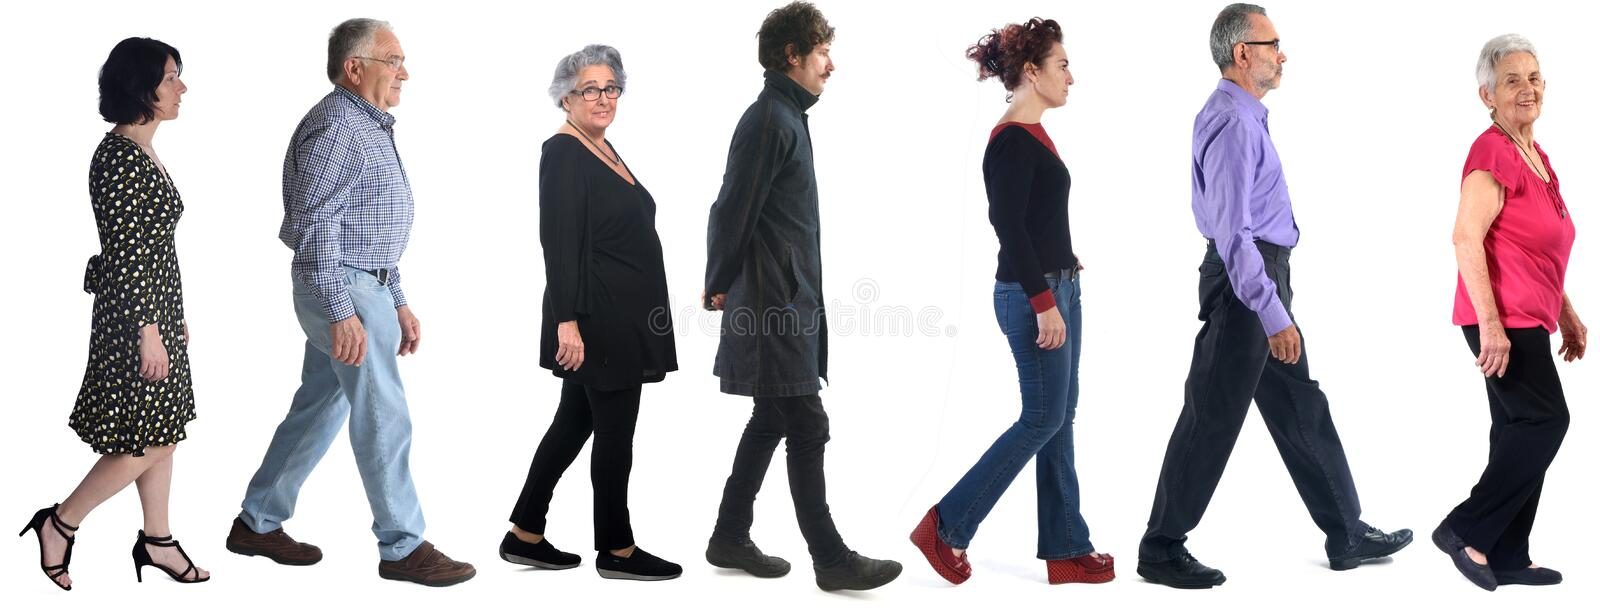 Group of woman and men walking on white royalty free stock photo